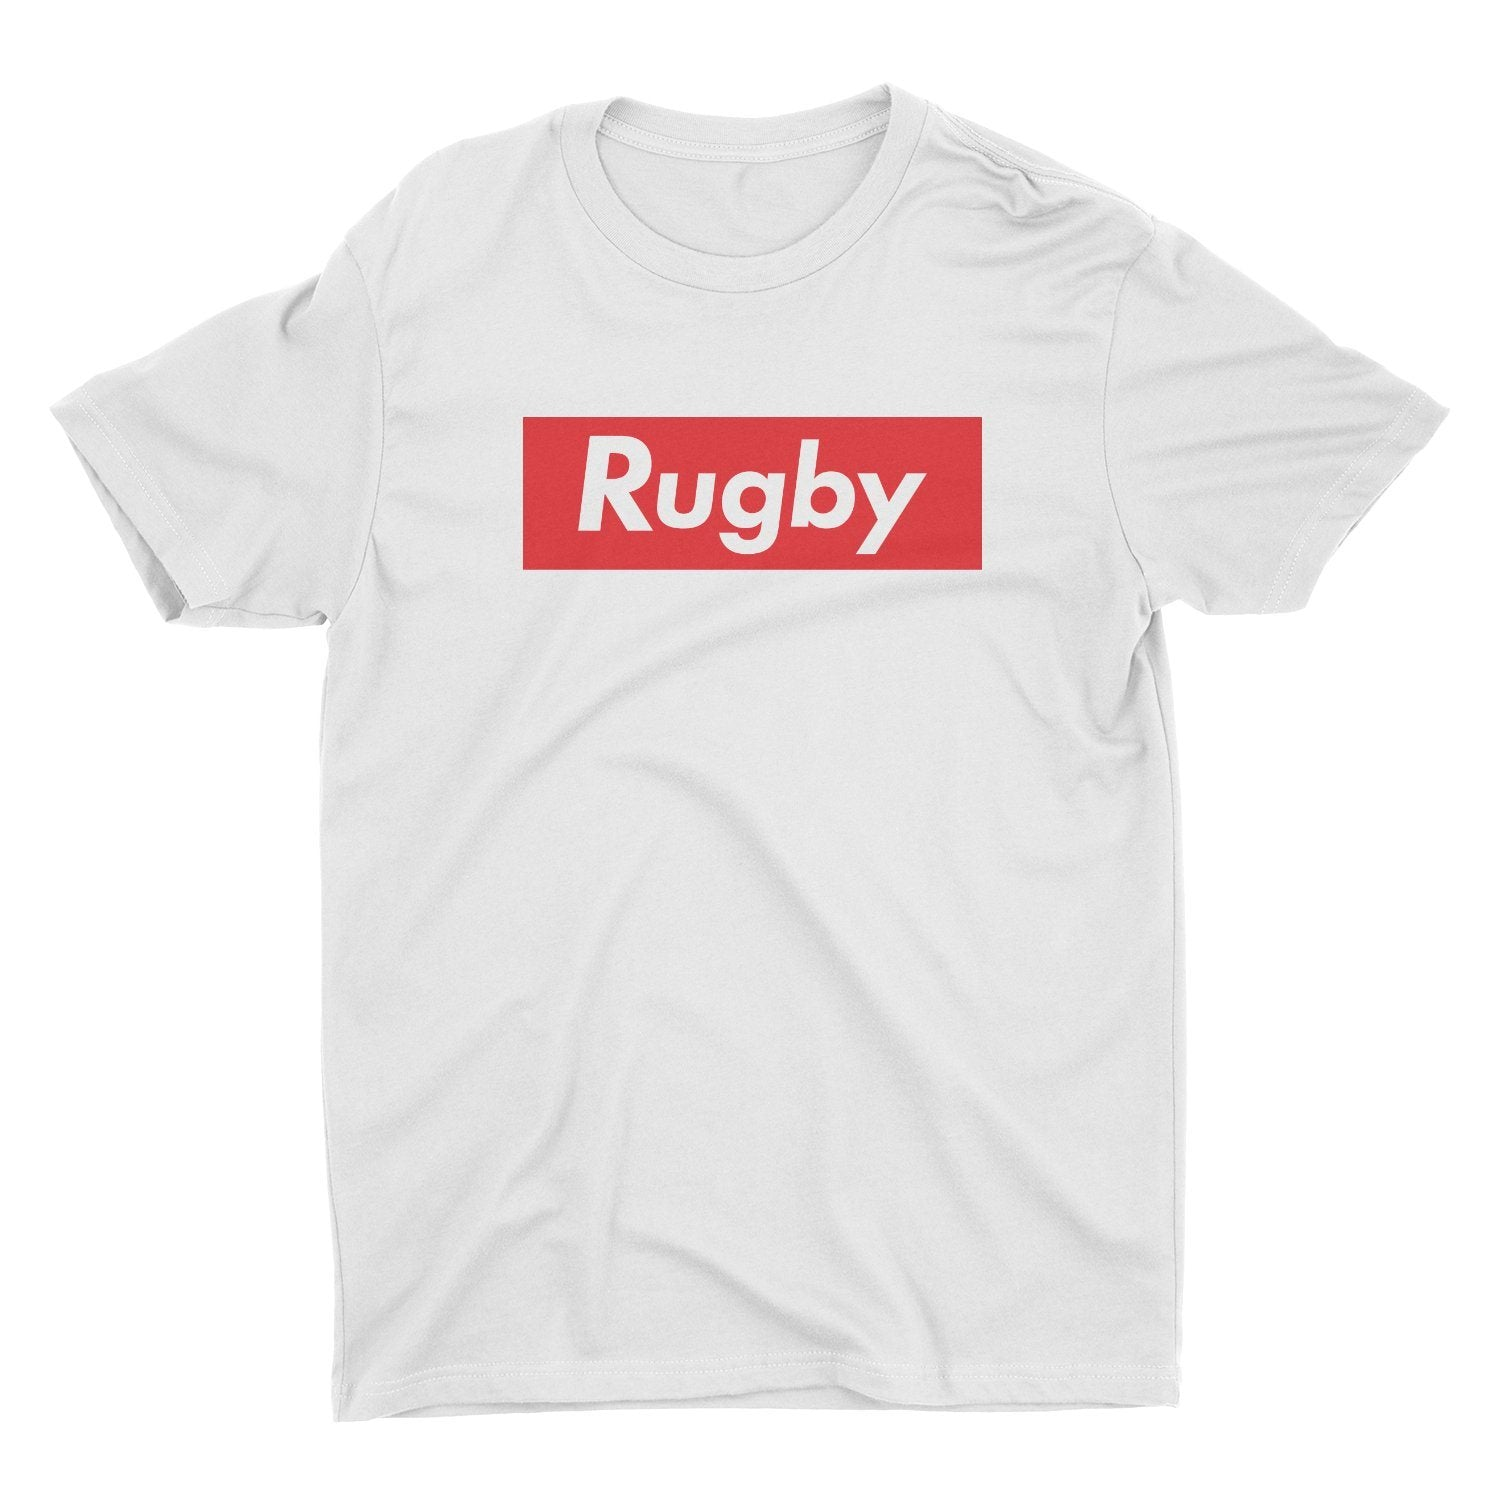 Graphic Tees - Rugby Supreme Tee